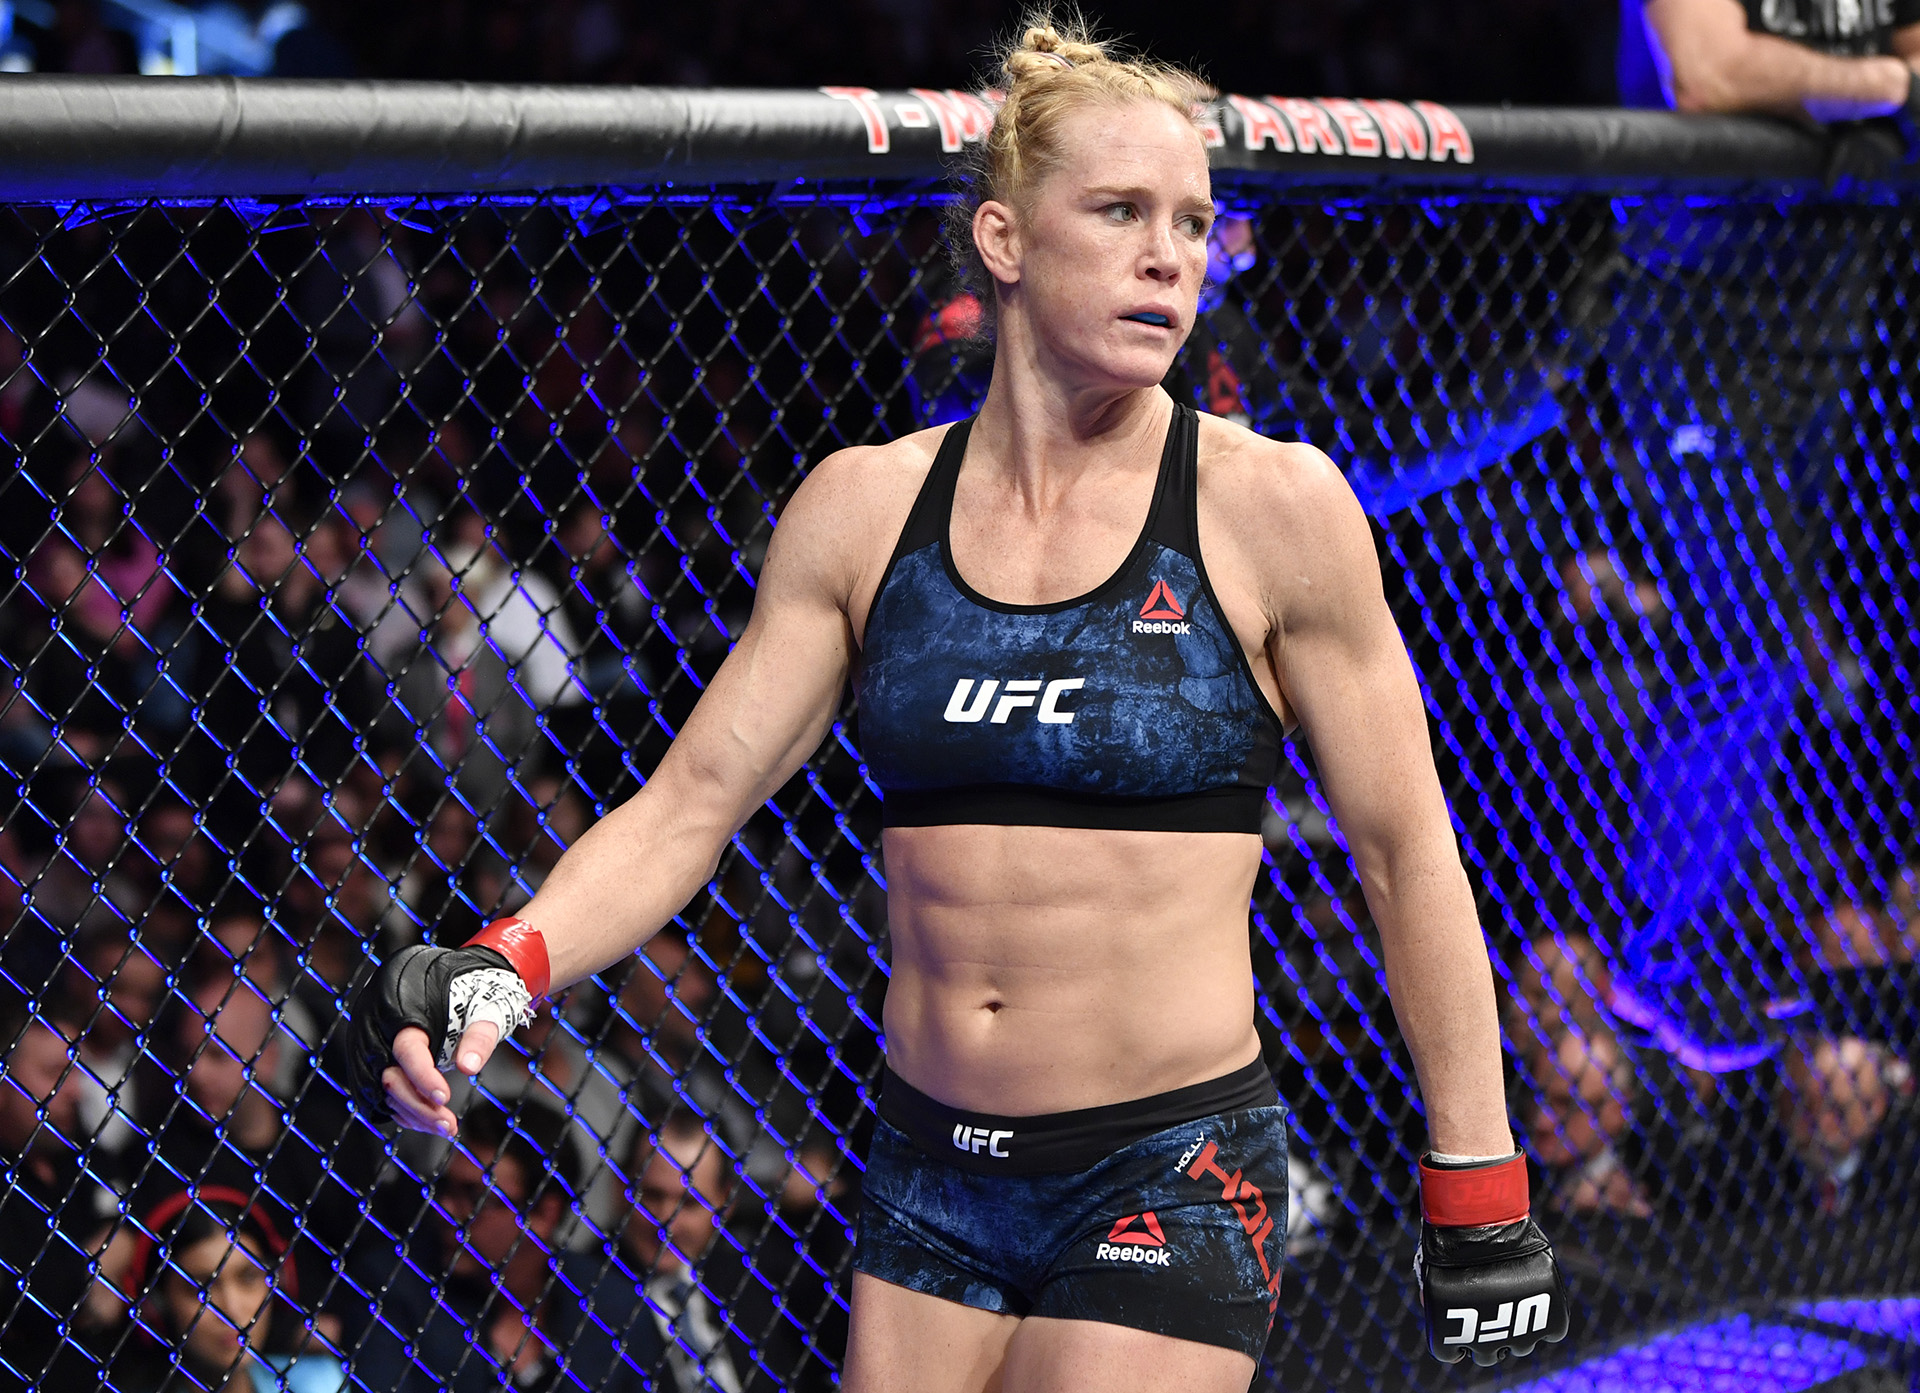 Holly Holm enters the octagon in her bantamweight fight during the UFC 246 event at T-Mobile Arena on January 18, 2020 in Las Vegas, Nevada. (Photo by Jeff Bottari/Zuffa LLC via Getty Images)